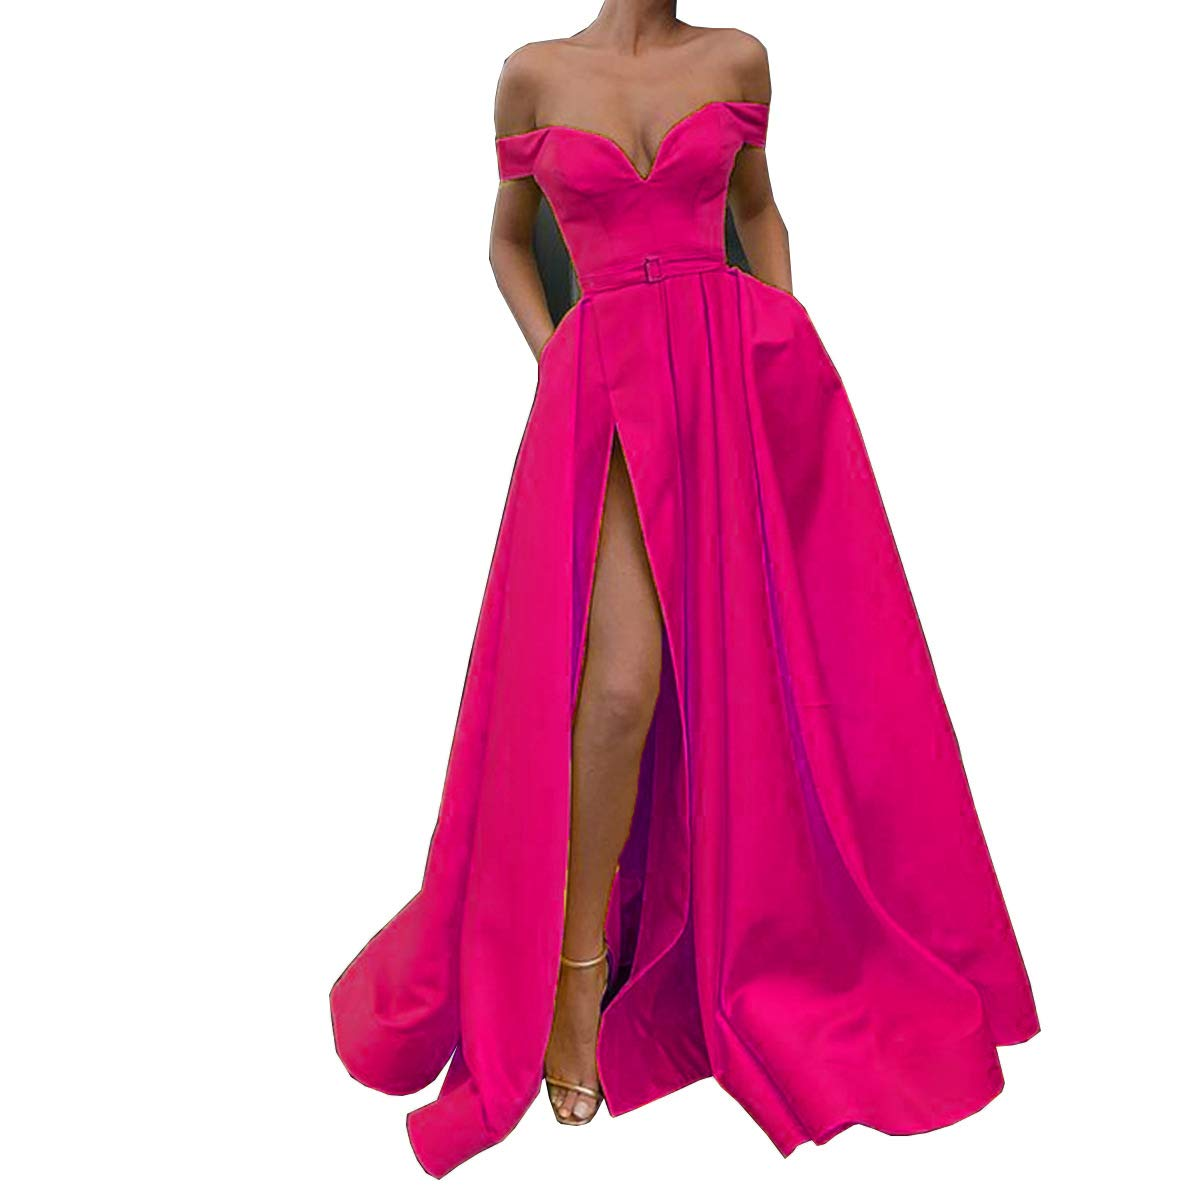 Fushia CCBubble Womens Long Satin Prom Dresses Off Shoulder High Slit Formal Evening Wedding Party Dress